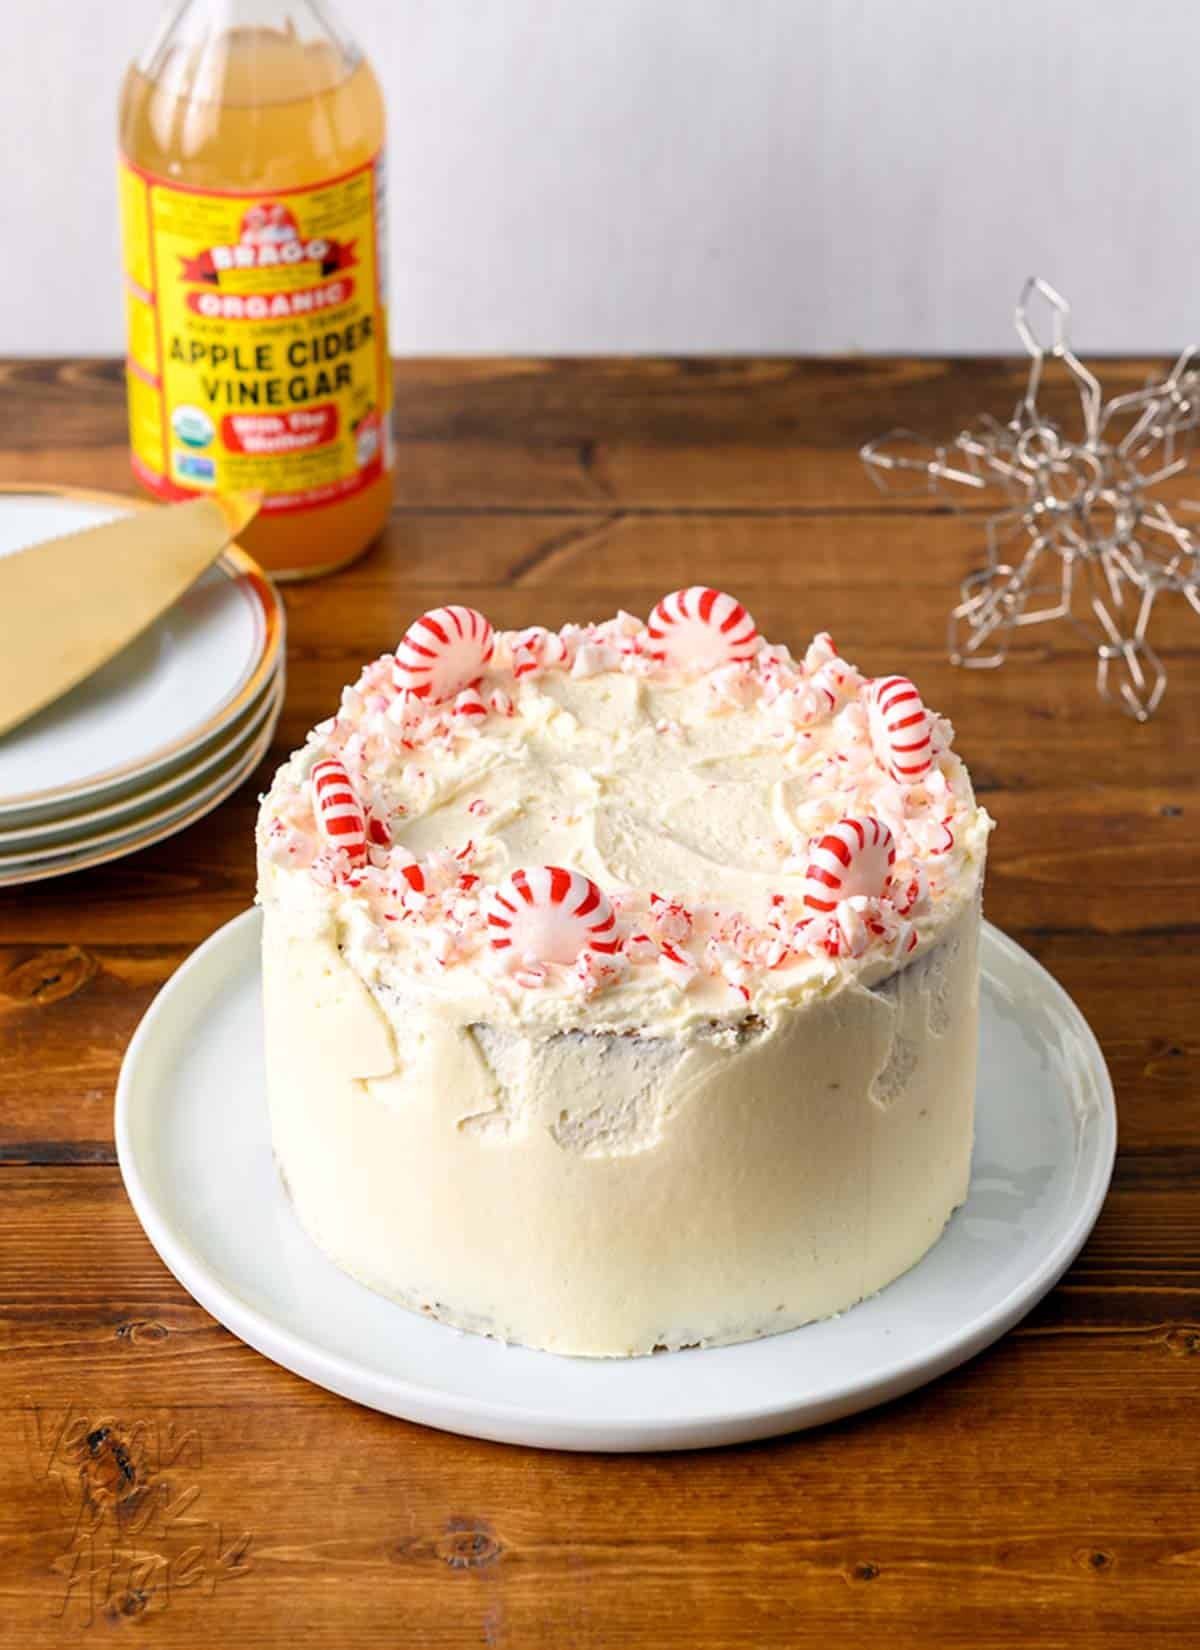 Image of small, layered cake with peppermints on top, serving plates and apple cider vinegar beside it.